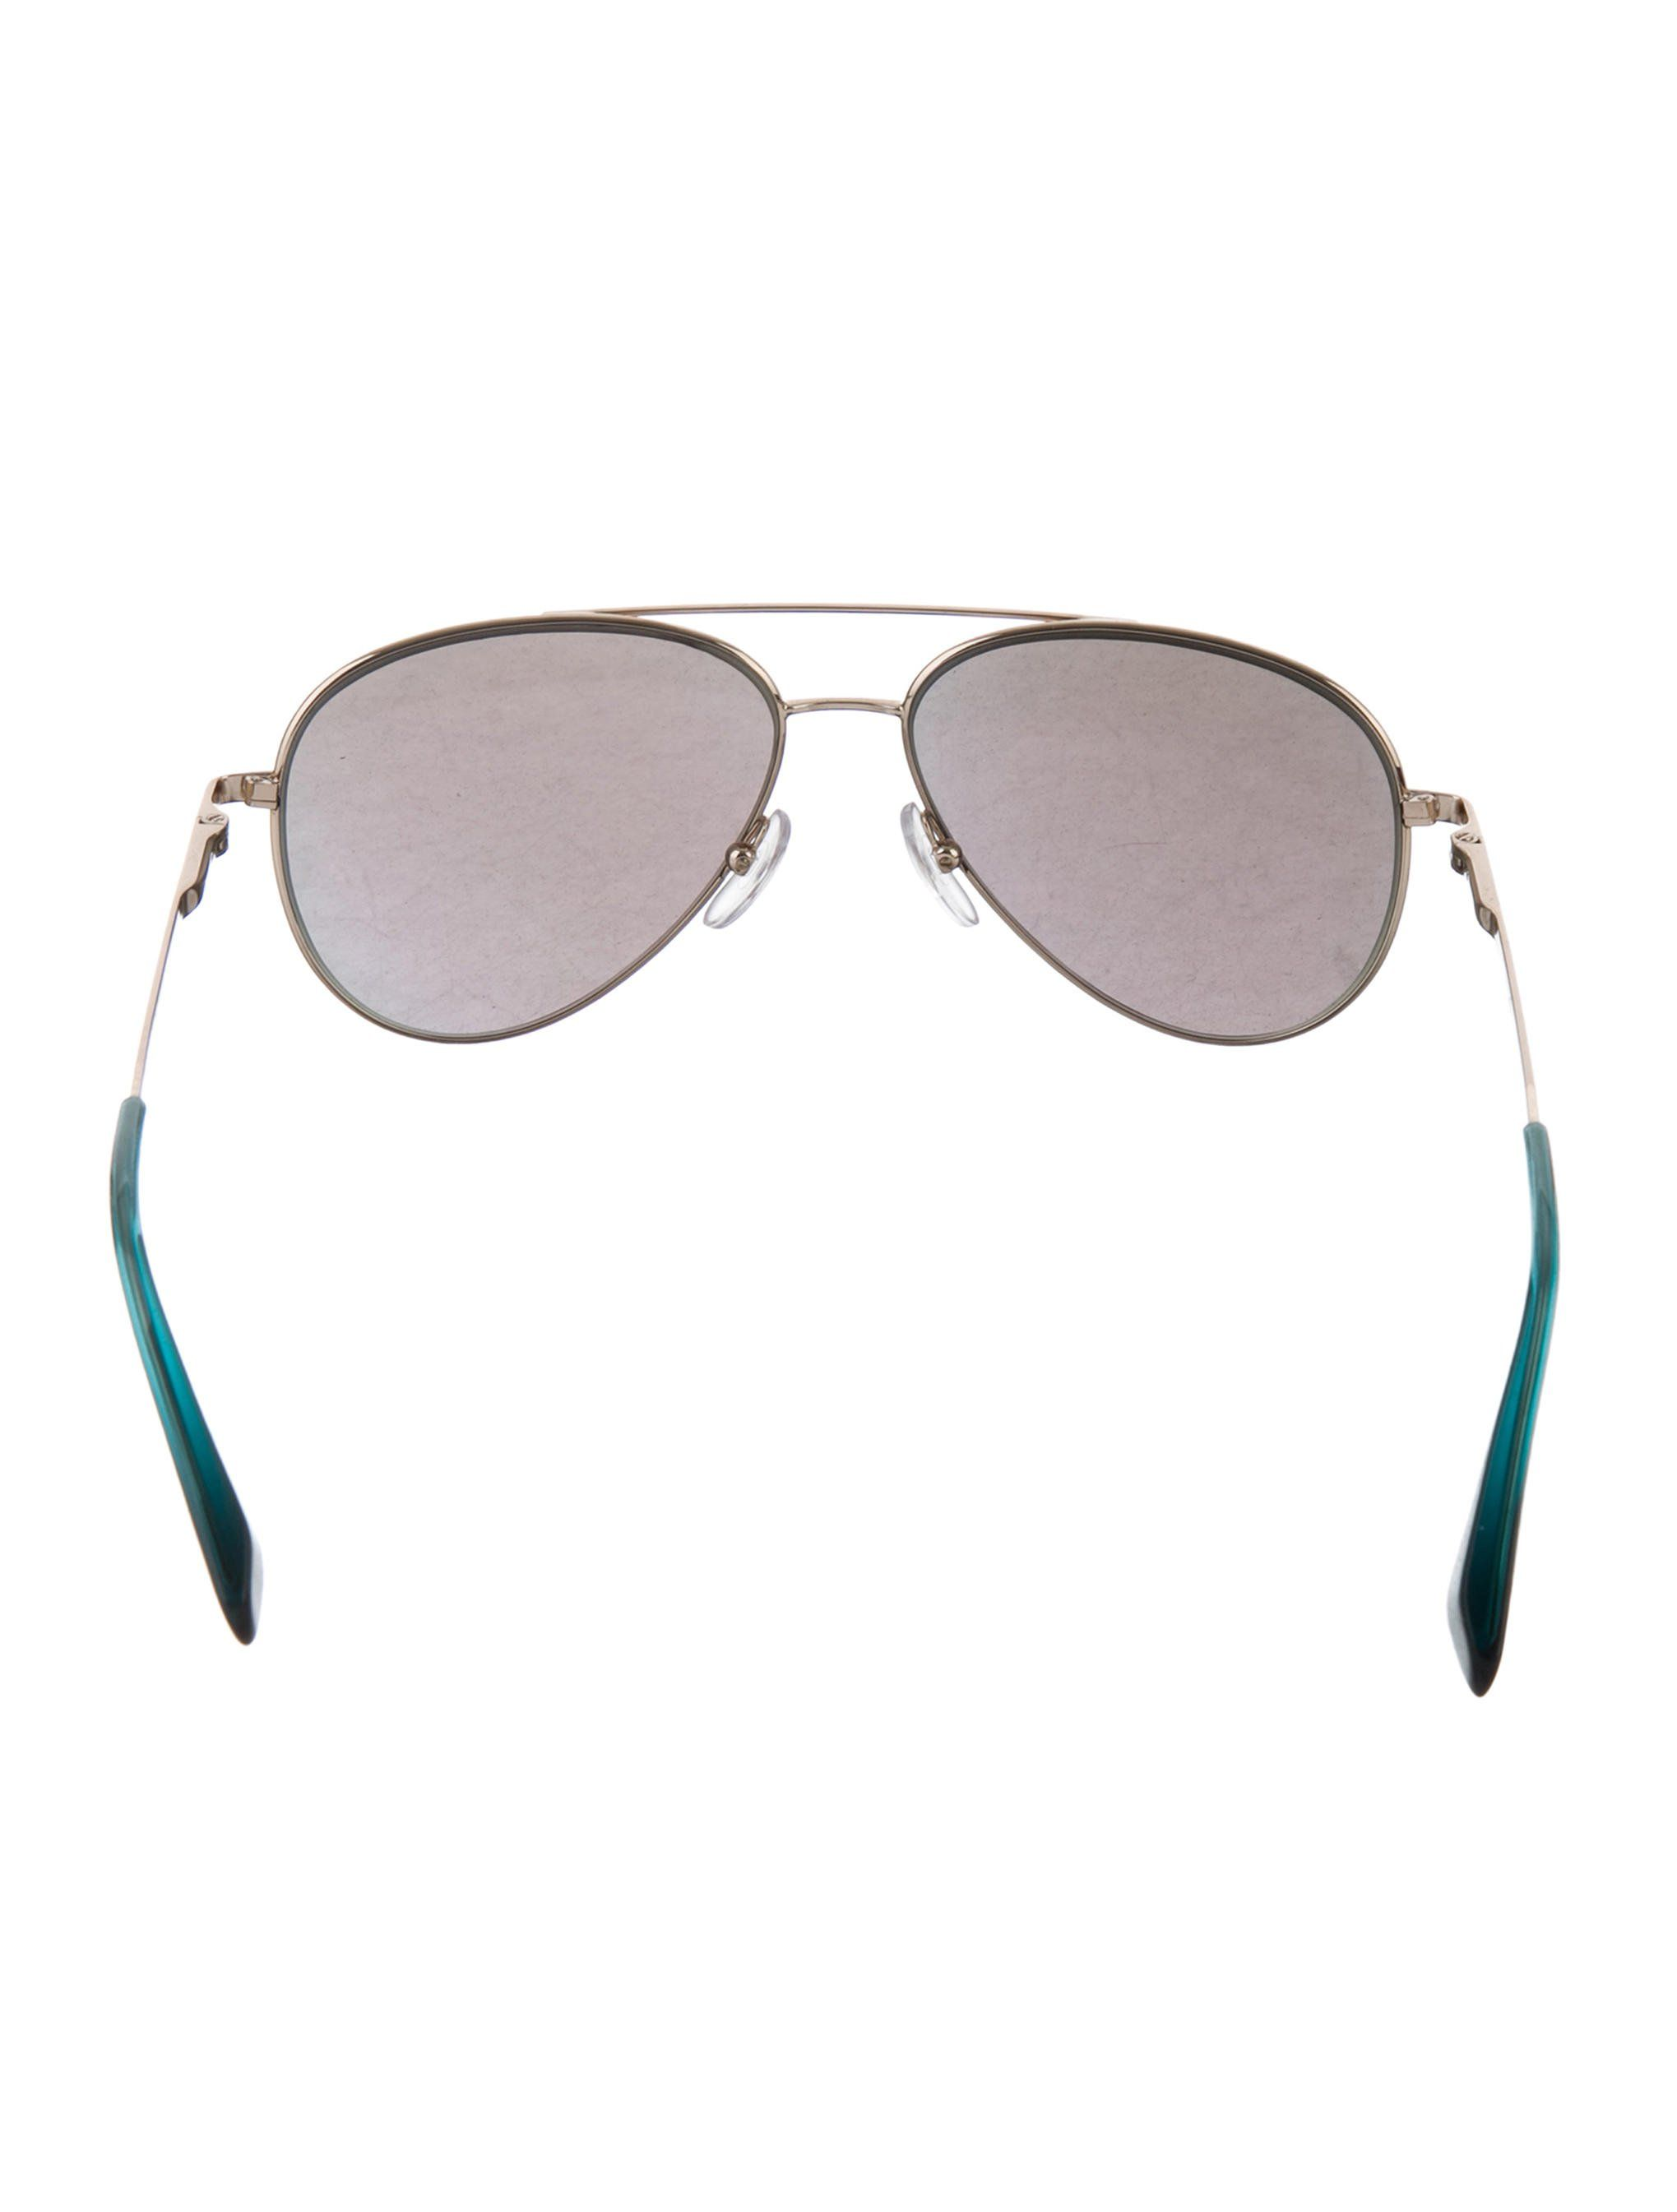 2bc75aeccf Silver-tone metal Cutler and Gross aviator sunglasses with green reflective  lenses. Includes case